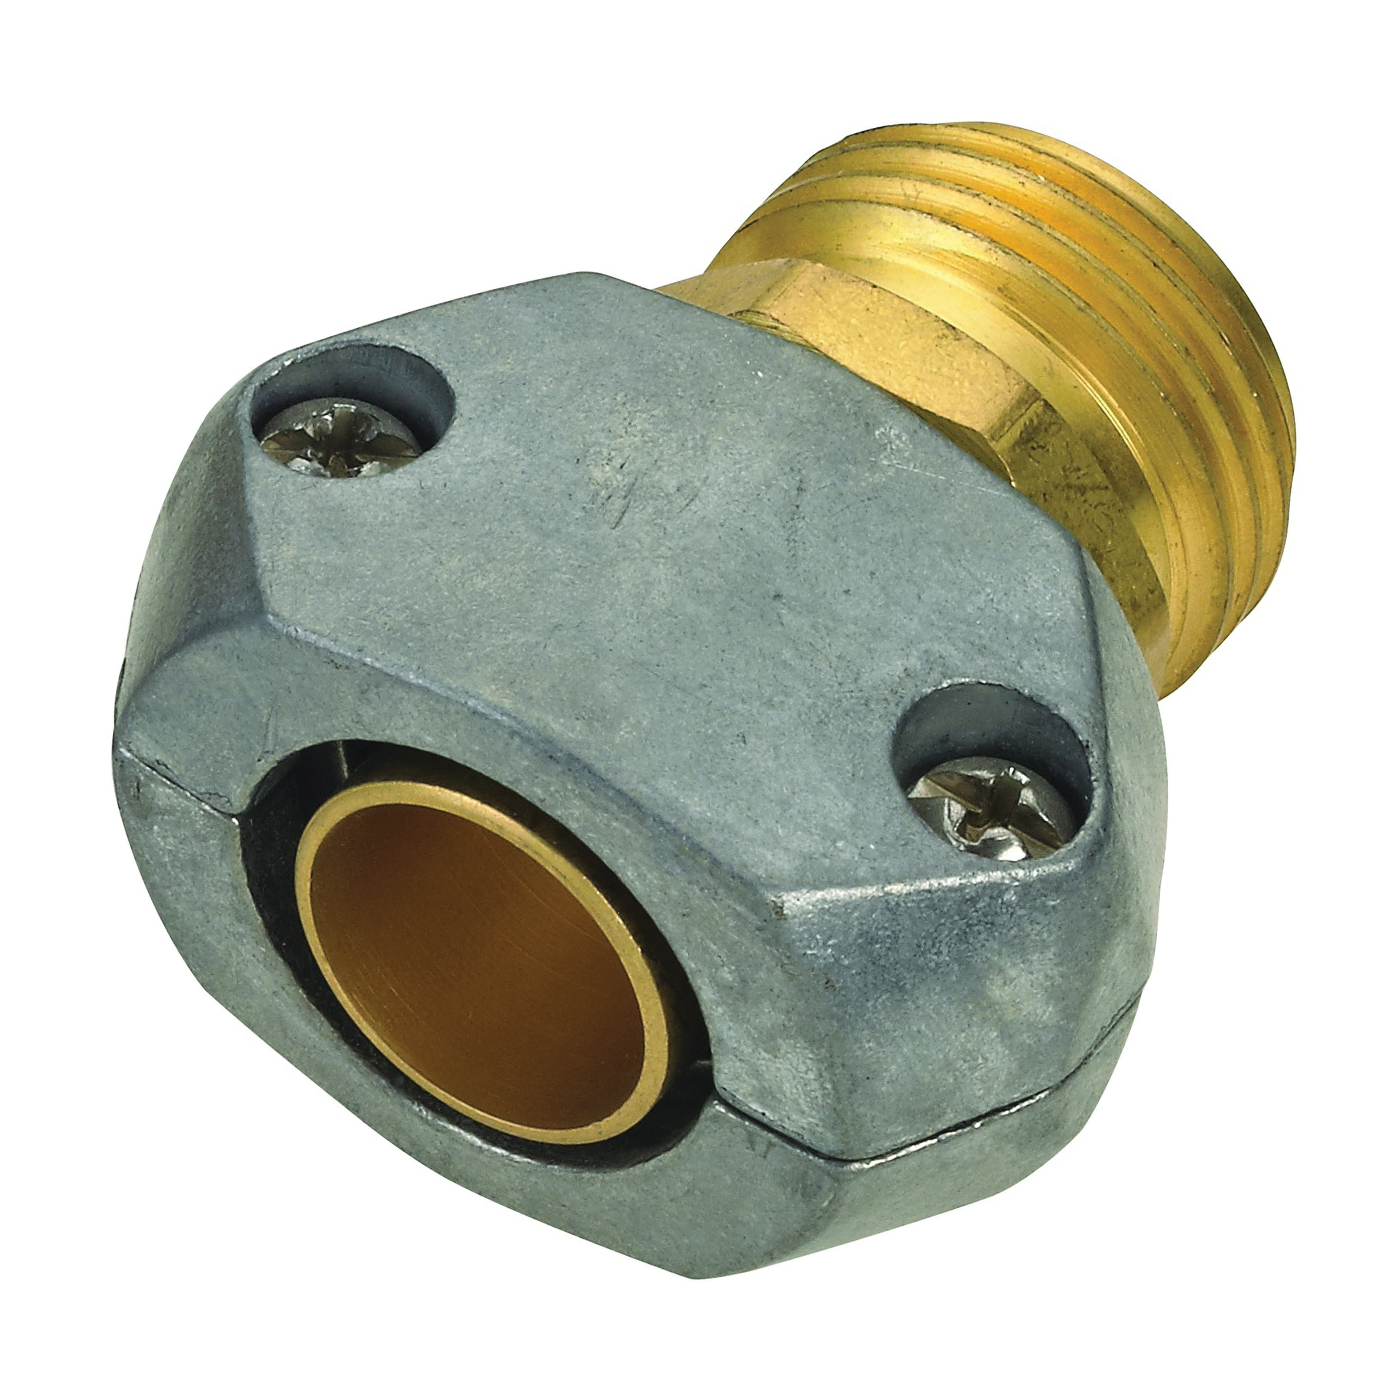 Picture of Landscapers Select GC534 Hose Coupling, 5/8 to 3/4 in, Male, Brass and zinc, Brass and silver